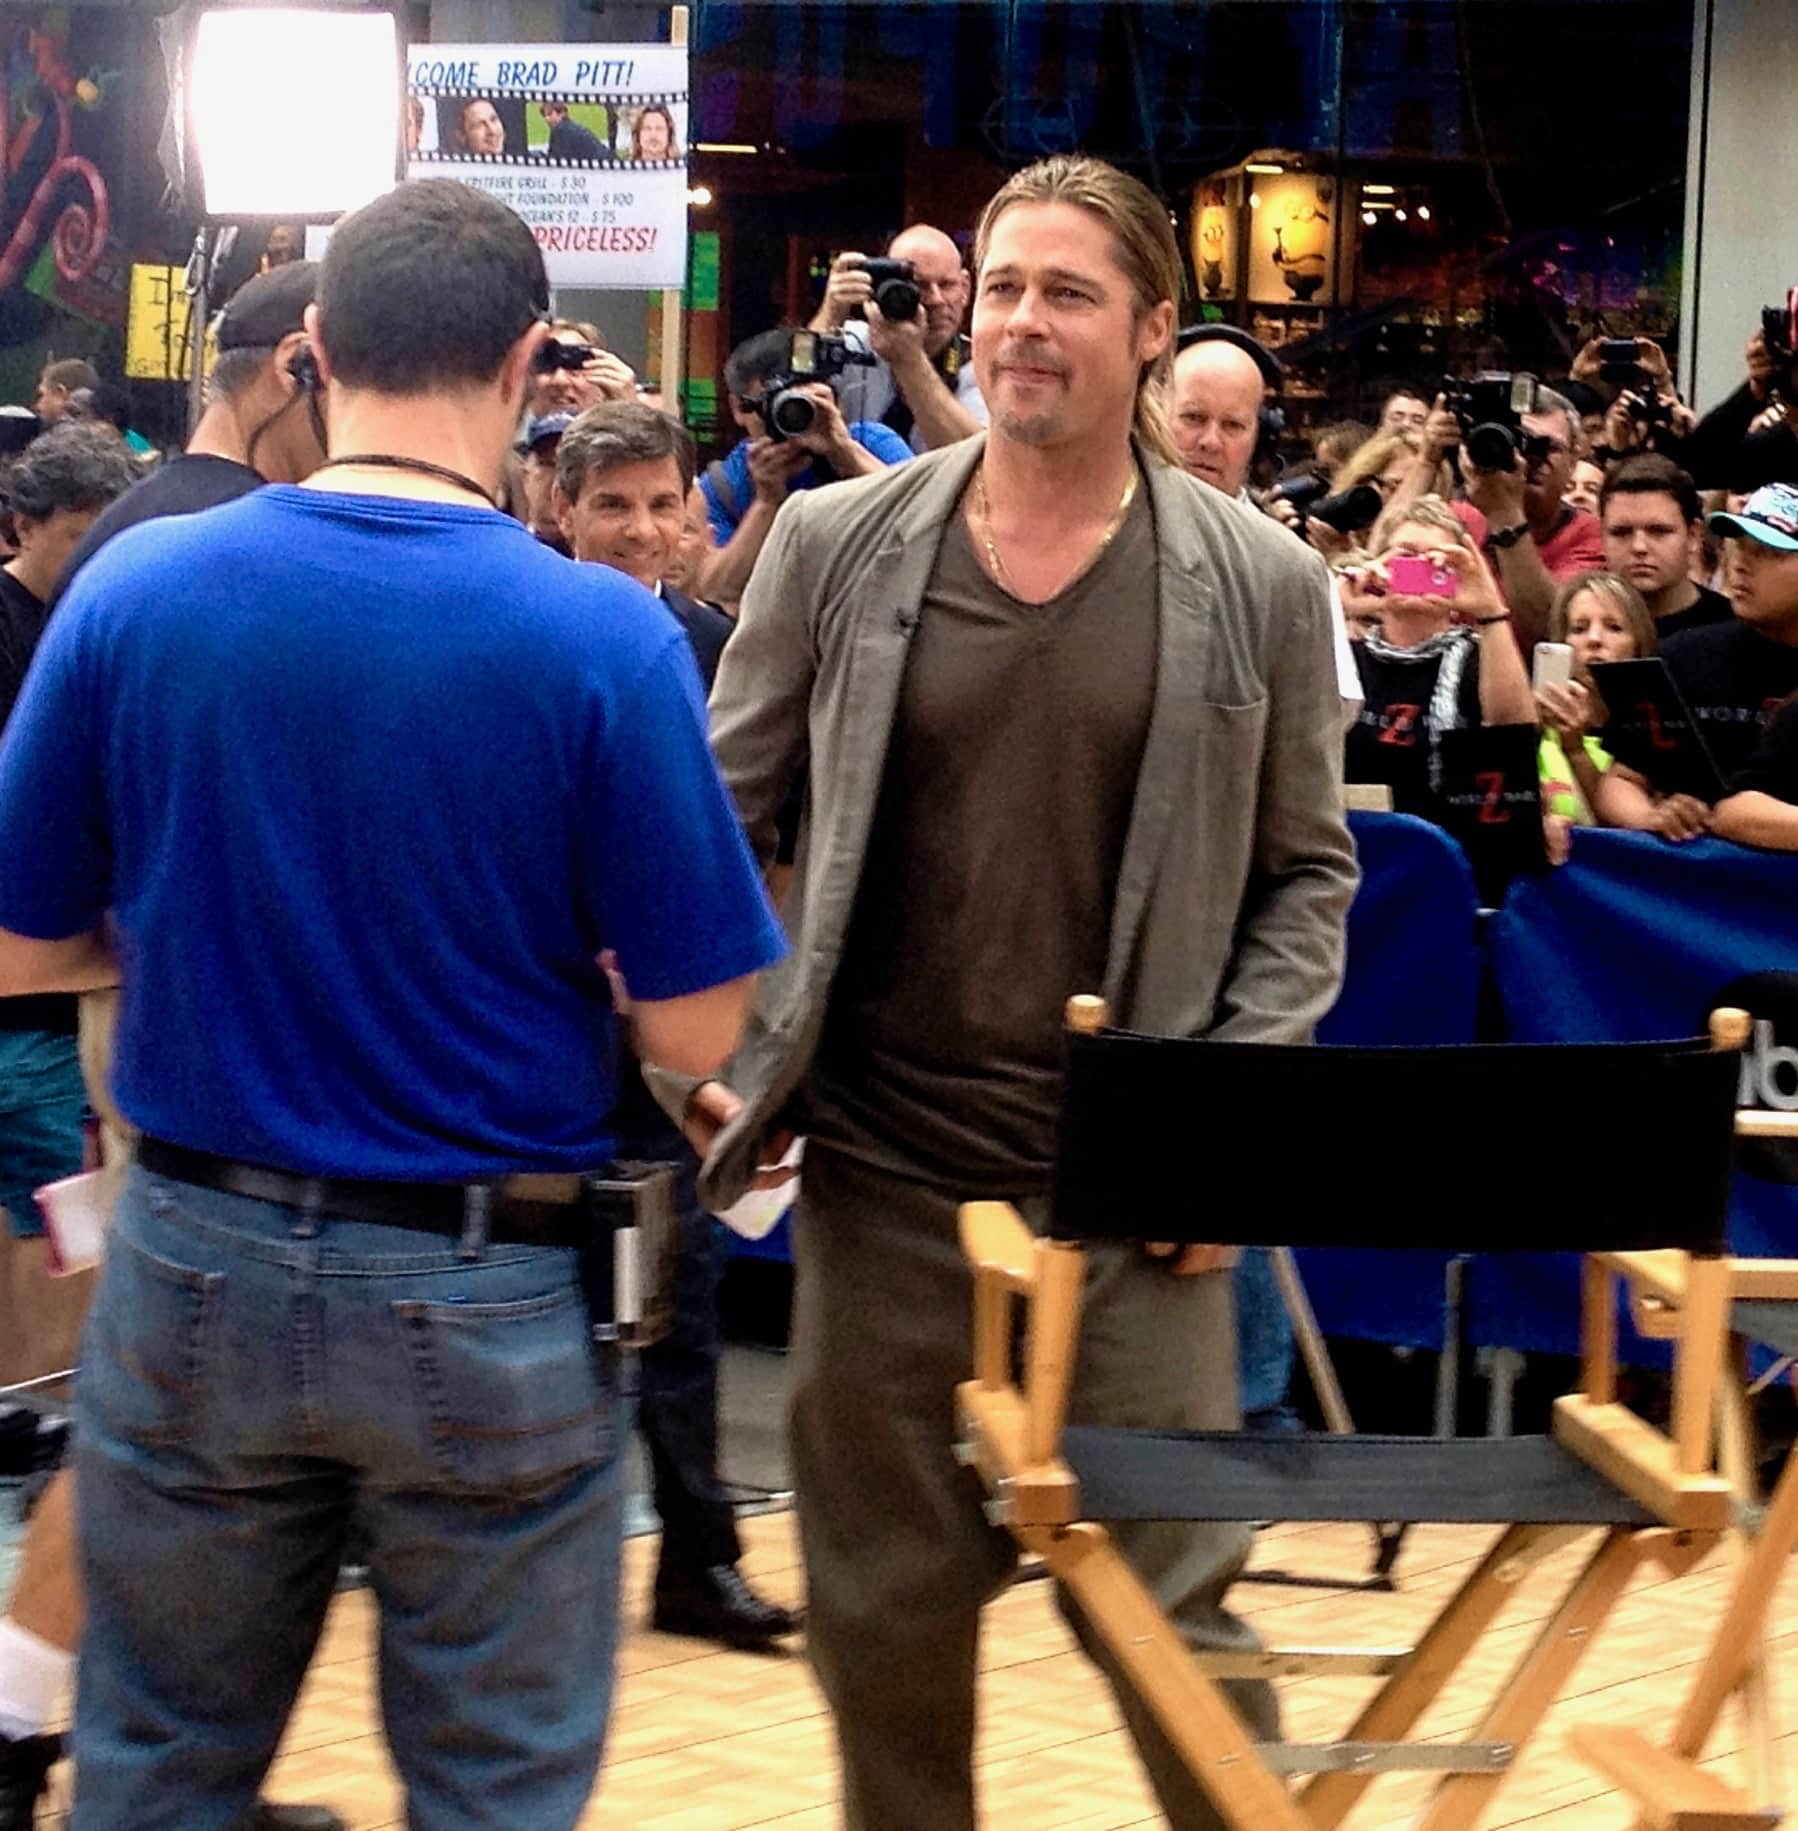 Brad Pitt at Good Morning America, New York City